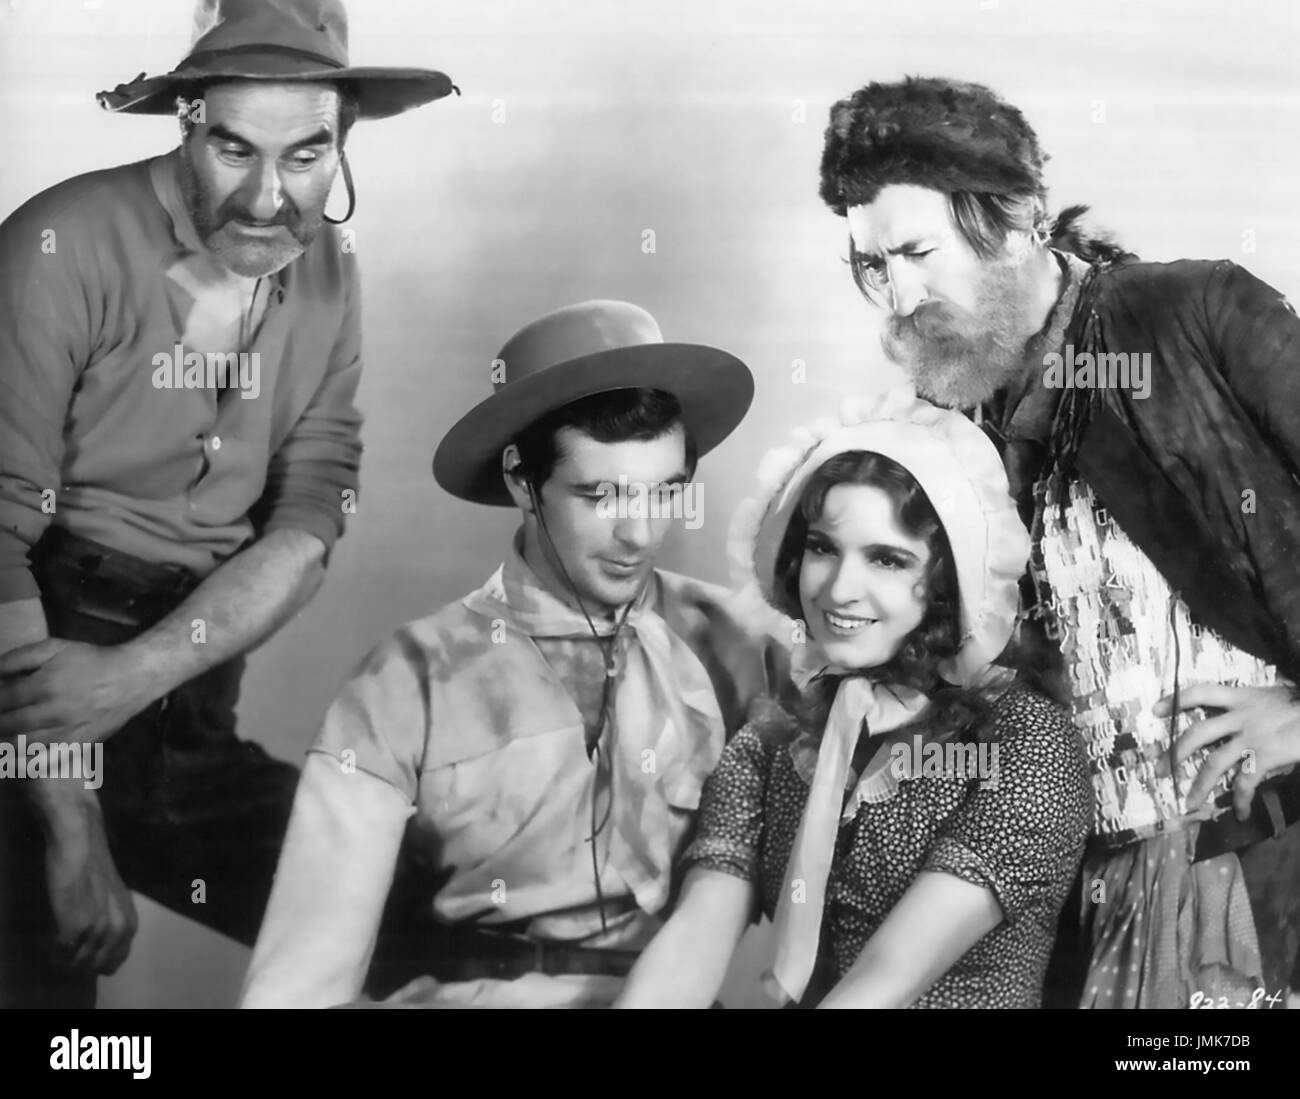 FIGHTING CARAVANS 1931 Paramount Pictures fiolm with Gary Cooper and Lili Damita - Stock Image